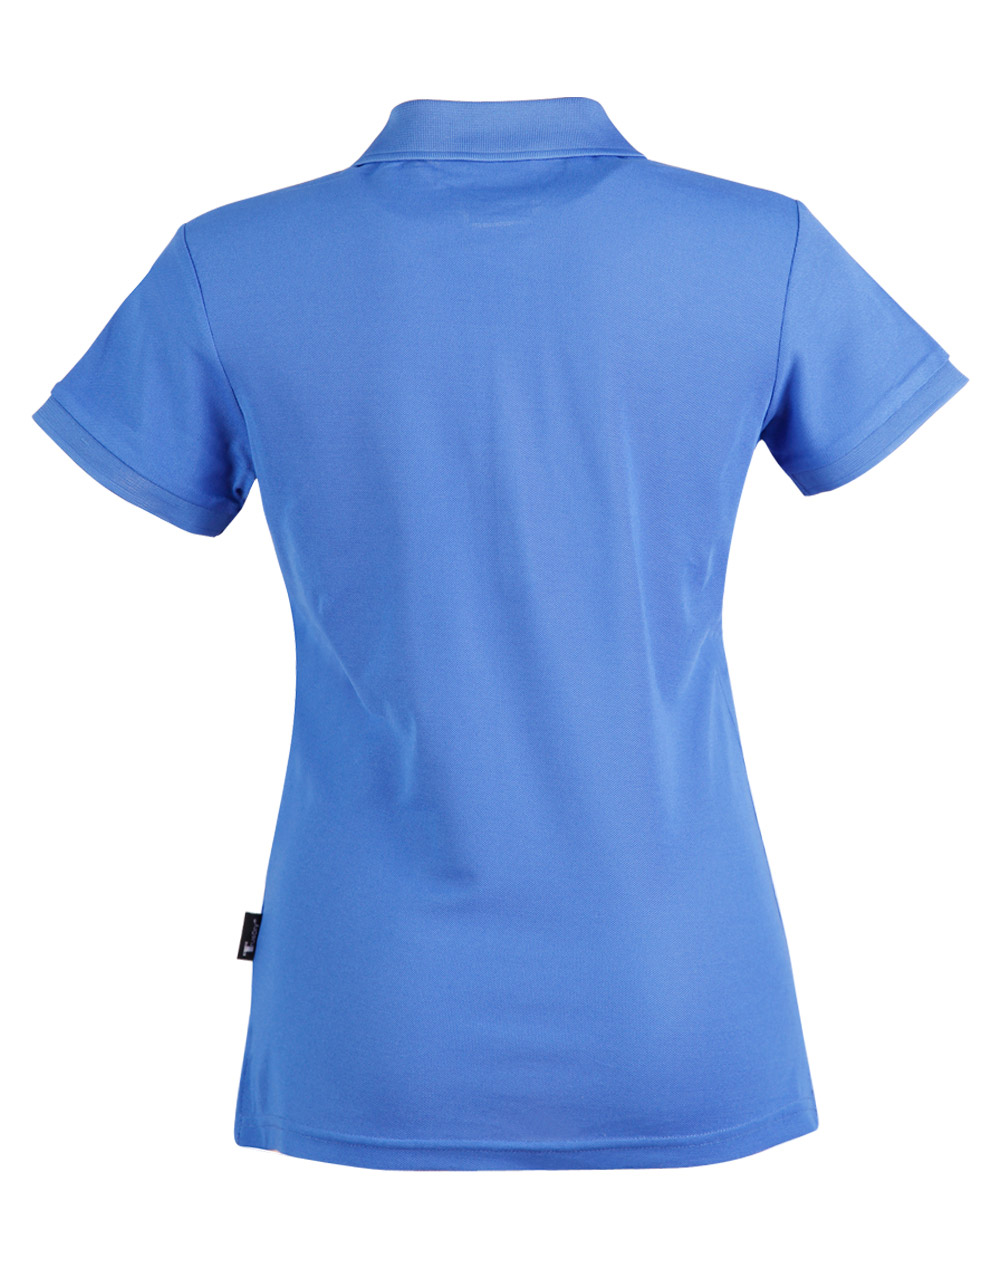 https://s3-ap-southeast-1.amazonaws.com/ws-imgs/POLOSHIRTS/PS64_Royal_Back.jpg